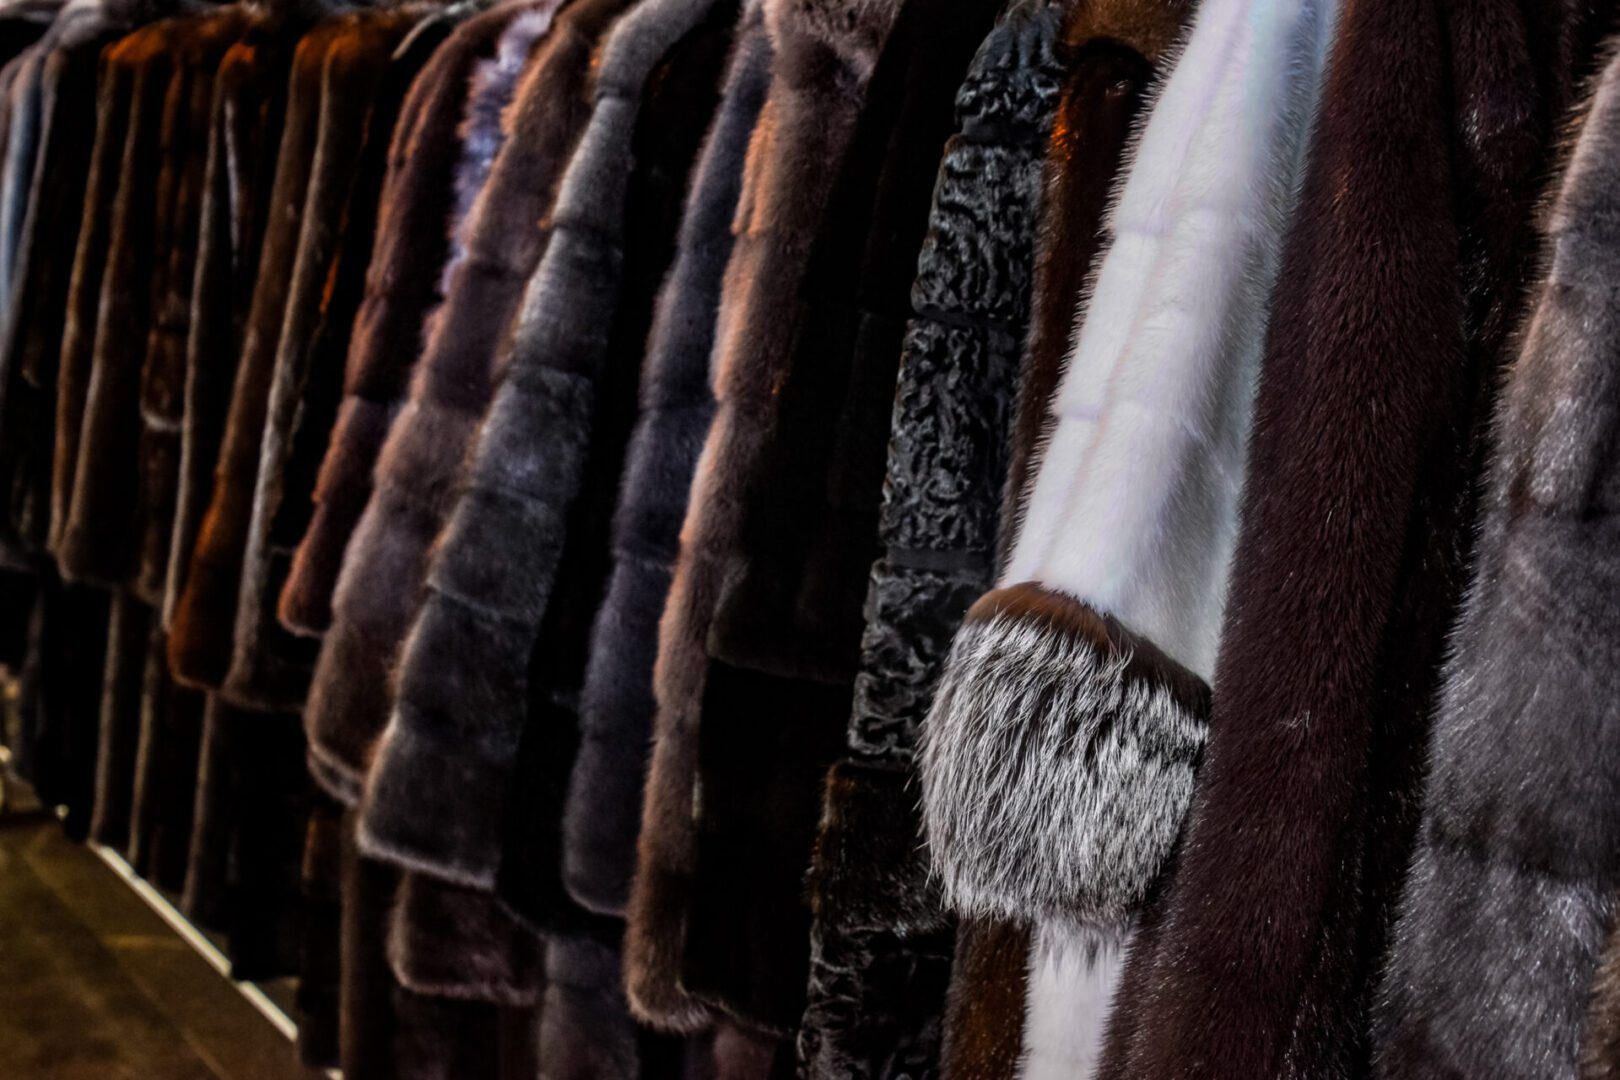 Fur coats on hangers. Fur store. fur coats in a row.